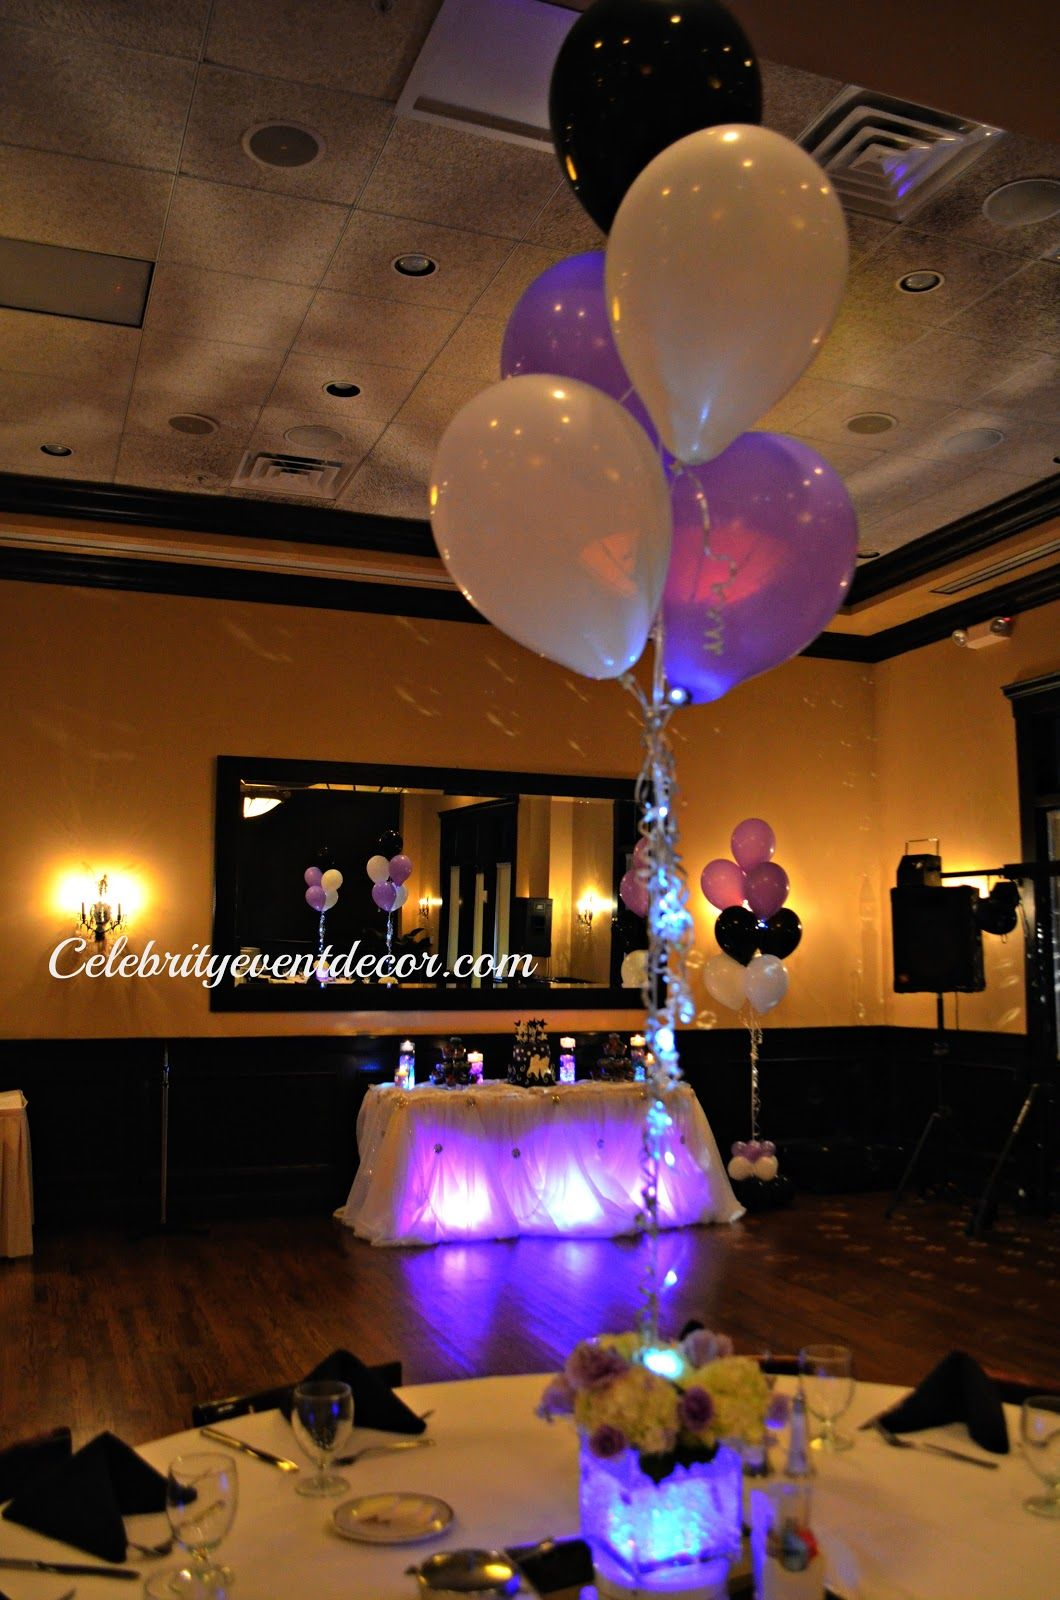 Sweet 16 Table Decoration Ideas sweet 16 table decoration idea Find This Pin And More On Birthday Ideas For Girls Sweet 16 Decorations